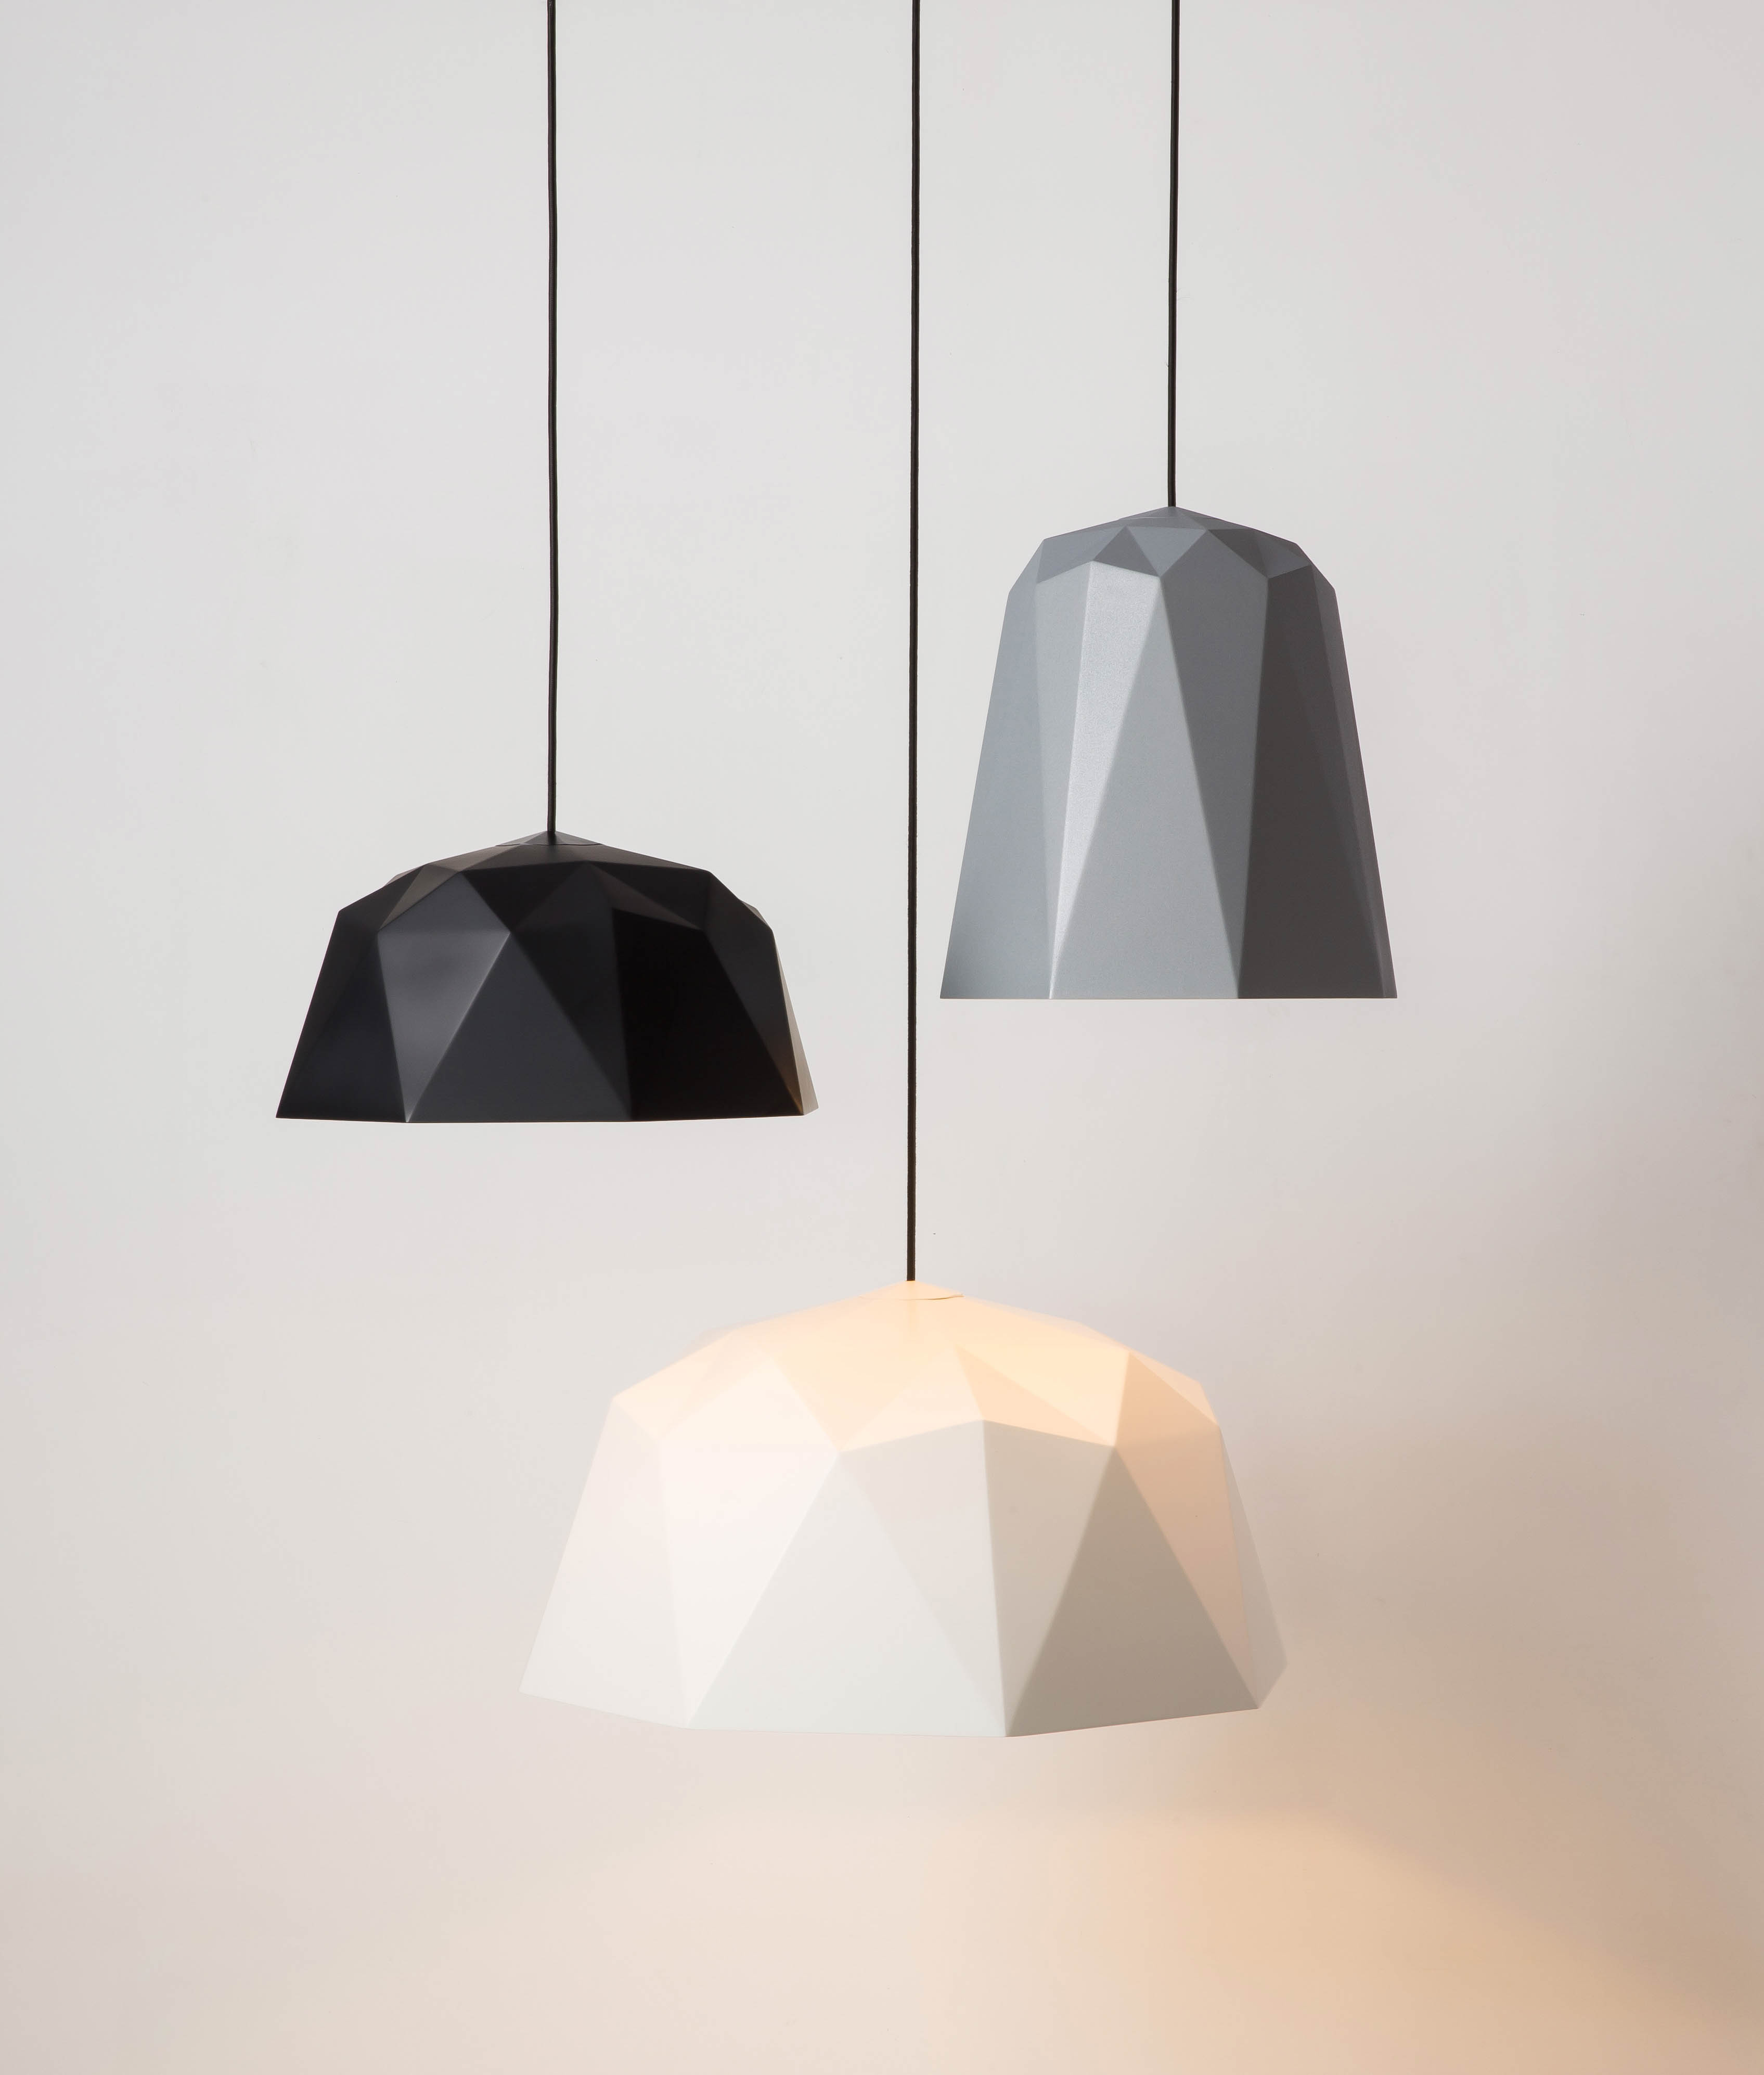 ceiling lighting en light lamp products ikea art lights gb pendant vintergata